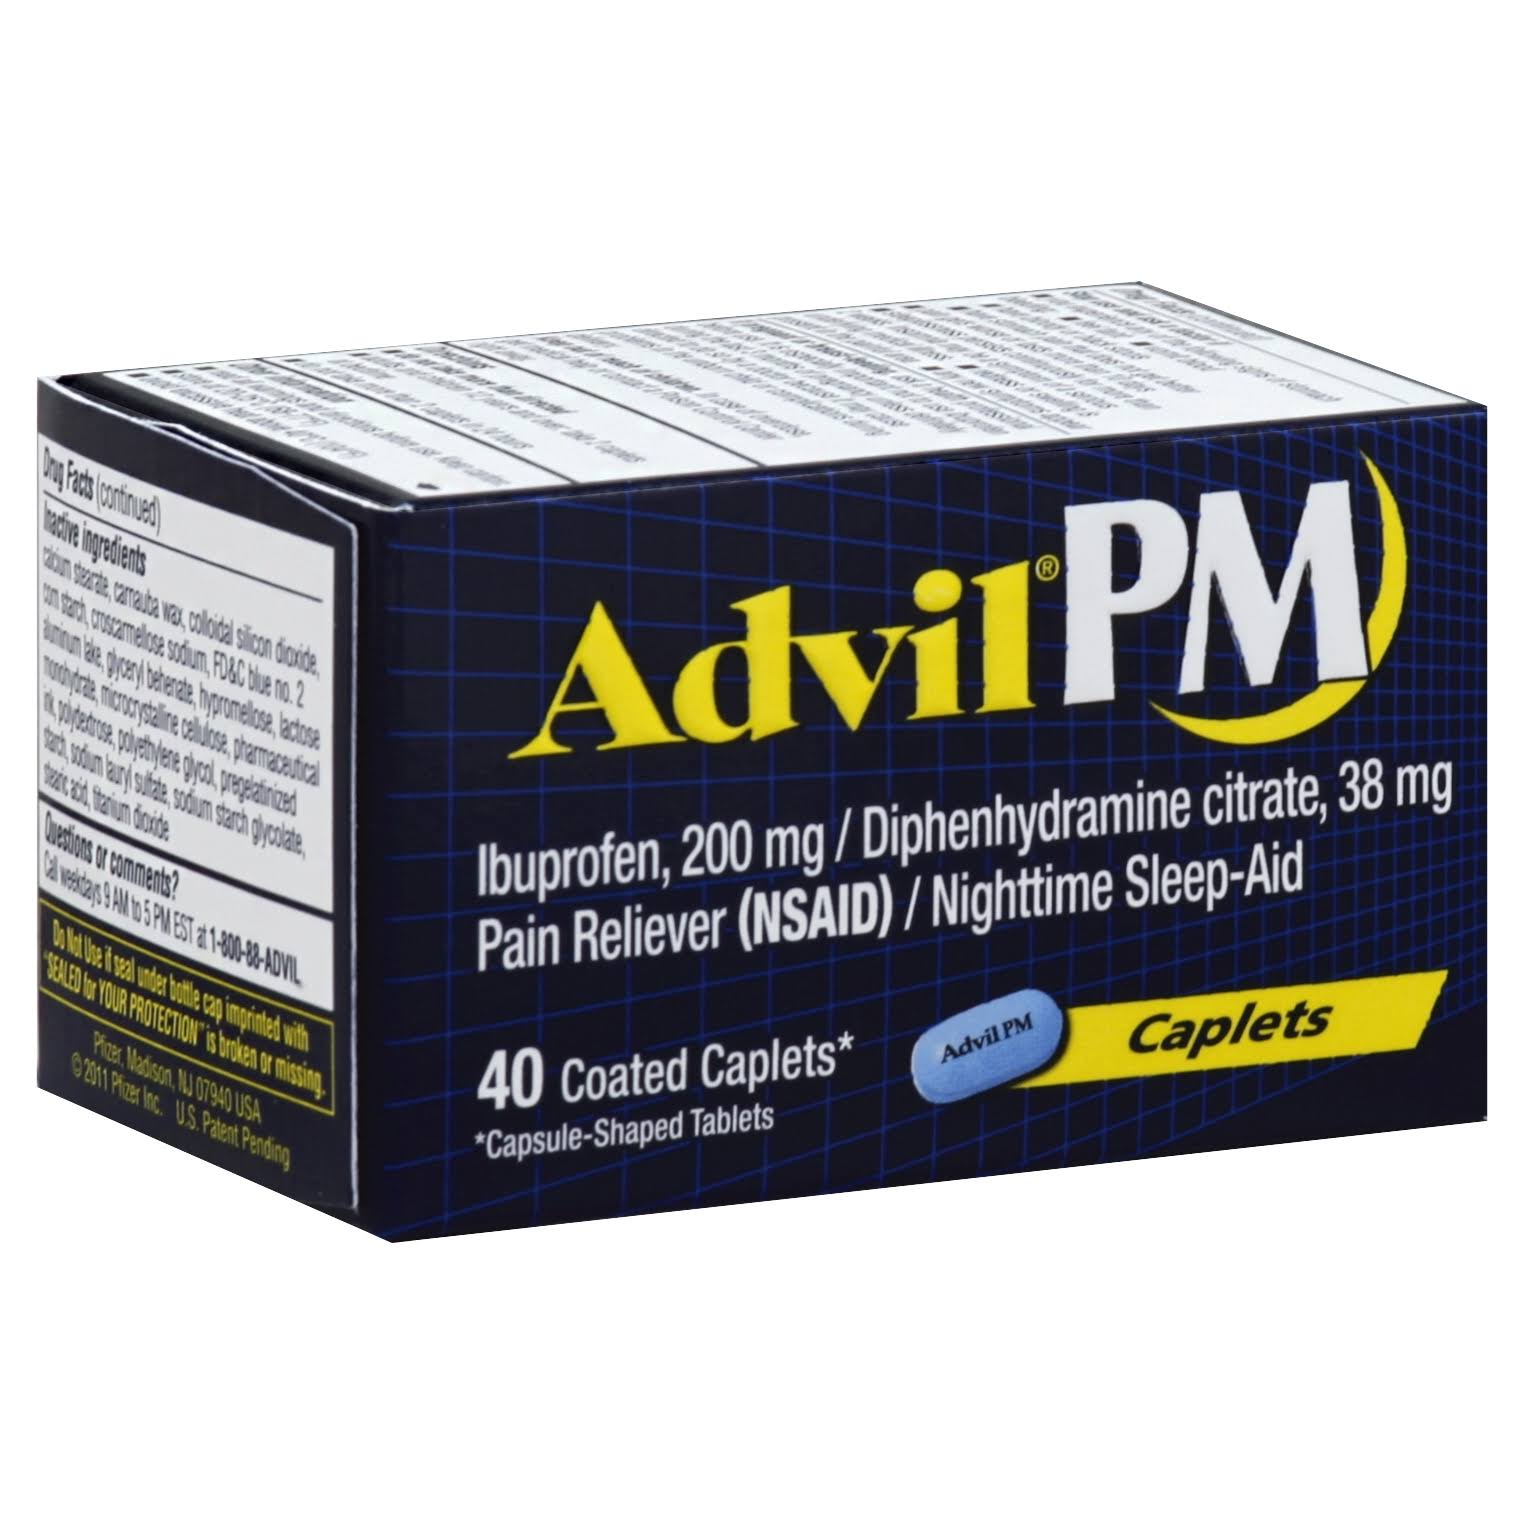 Advil PM Pain Reliver - 40 Coated Caplets